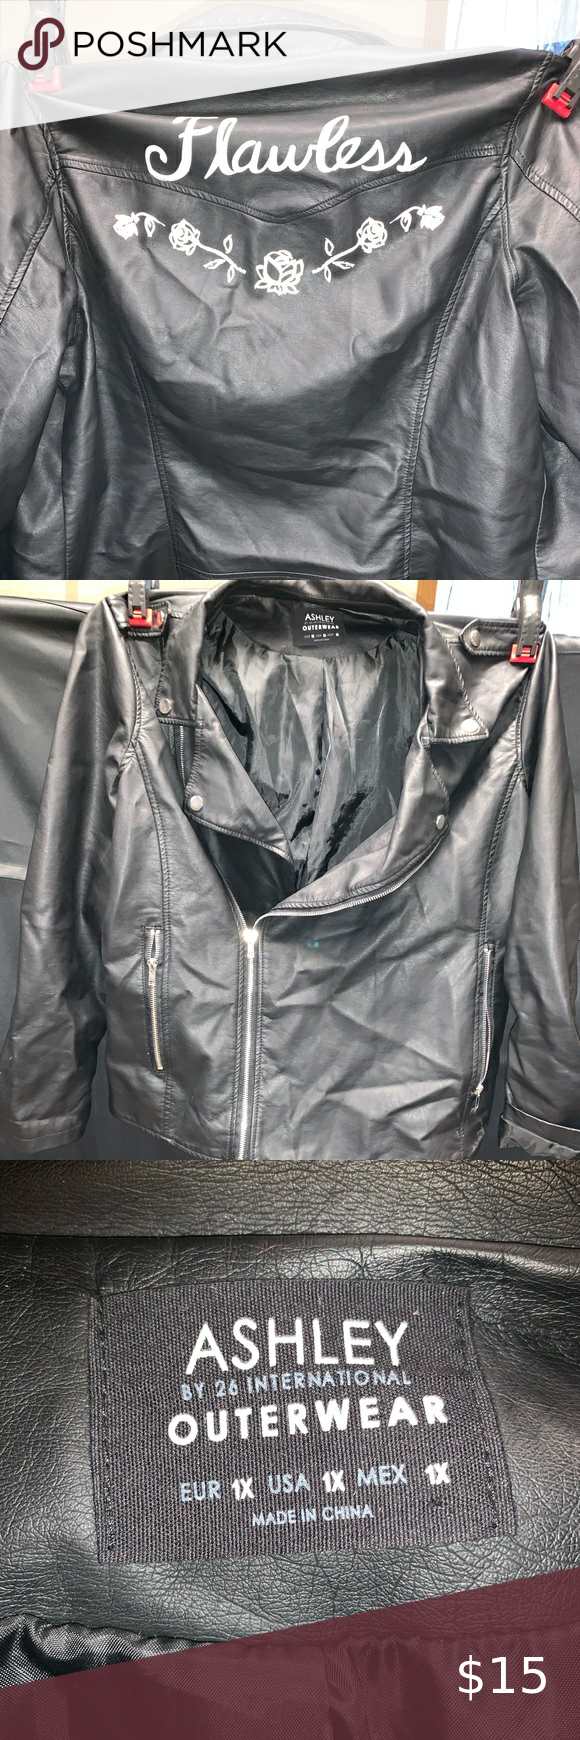 Faux Leather Jacket In 2020 Faux Leather Jackets Faux Leather Leather Jacket [ 1740 x 580 Pixel ]